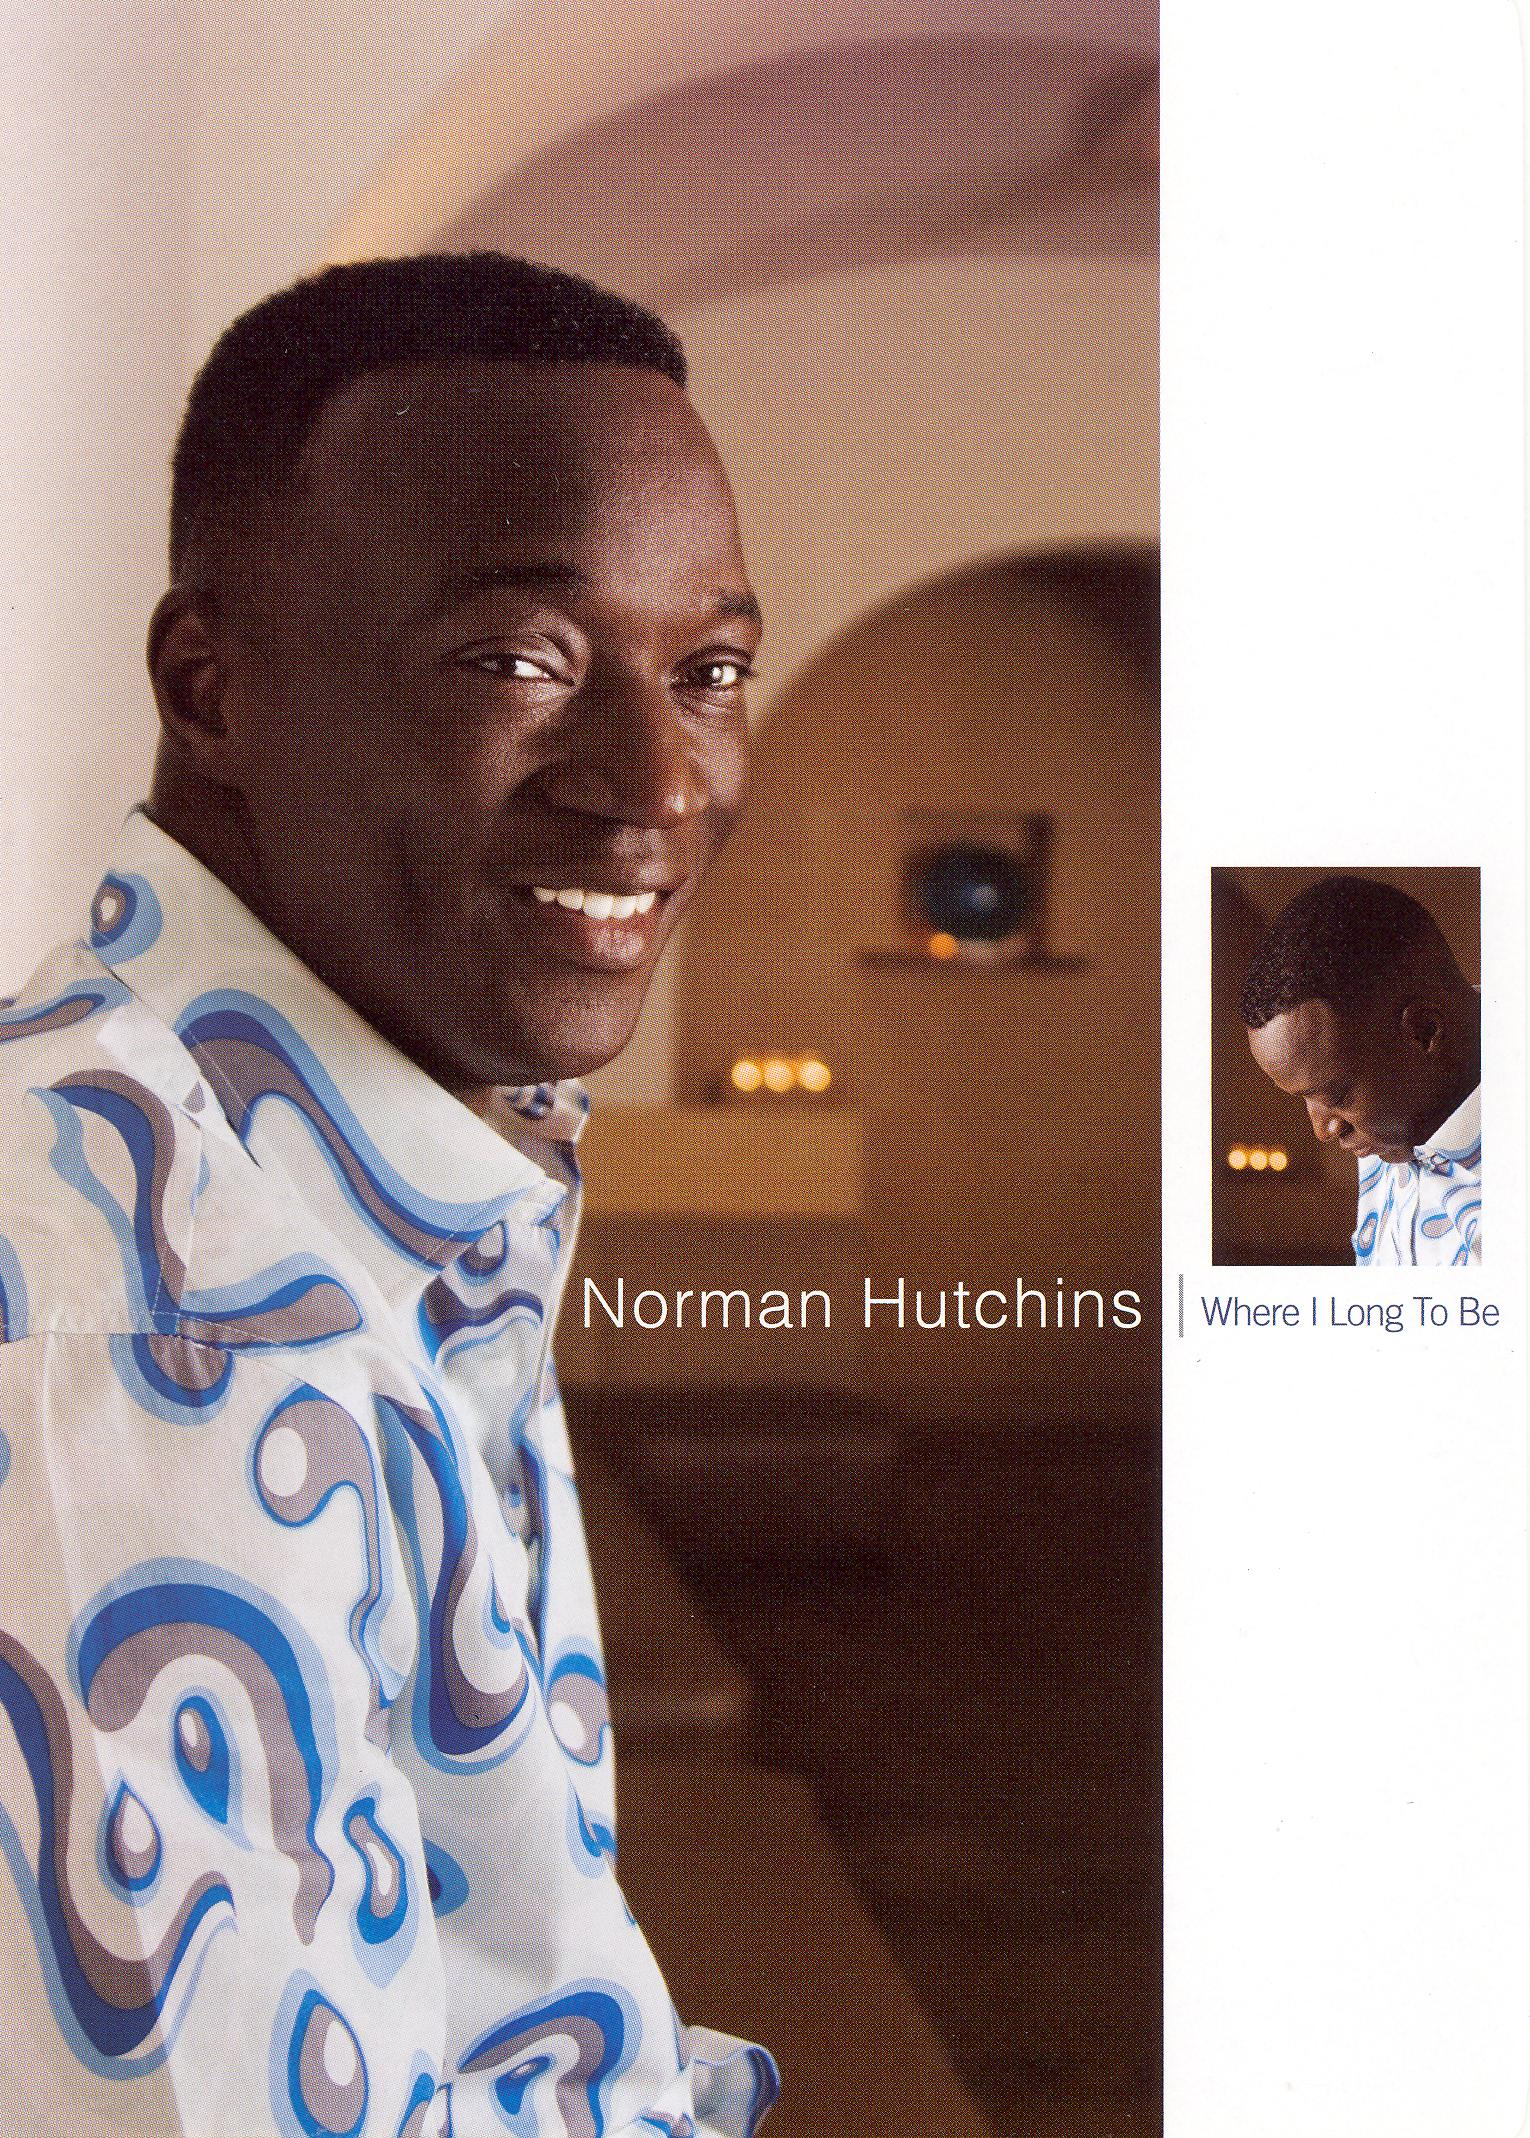 Norman Hutchins: Where I Long to Be